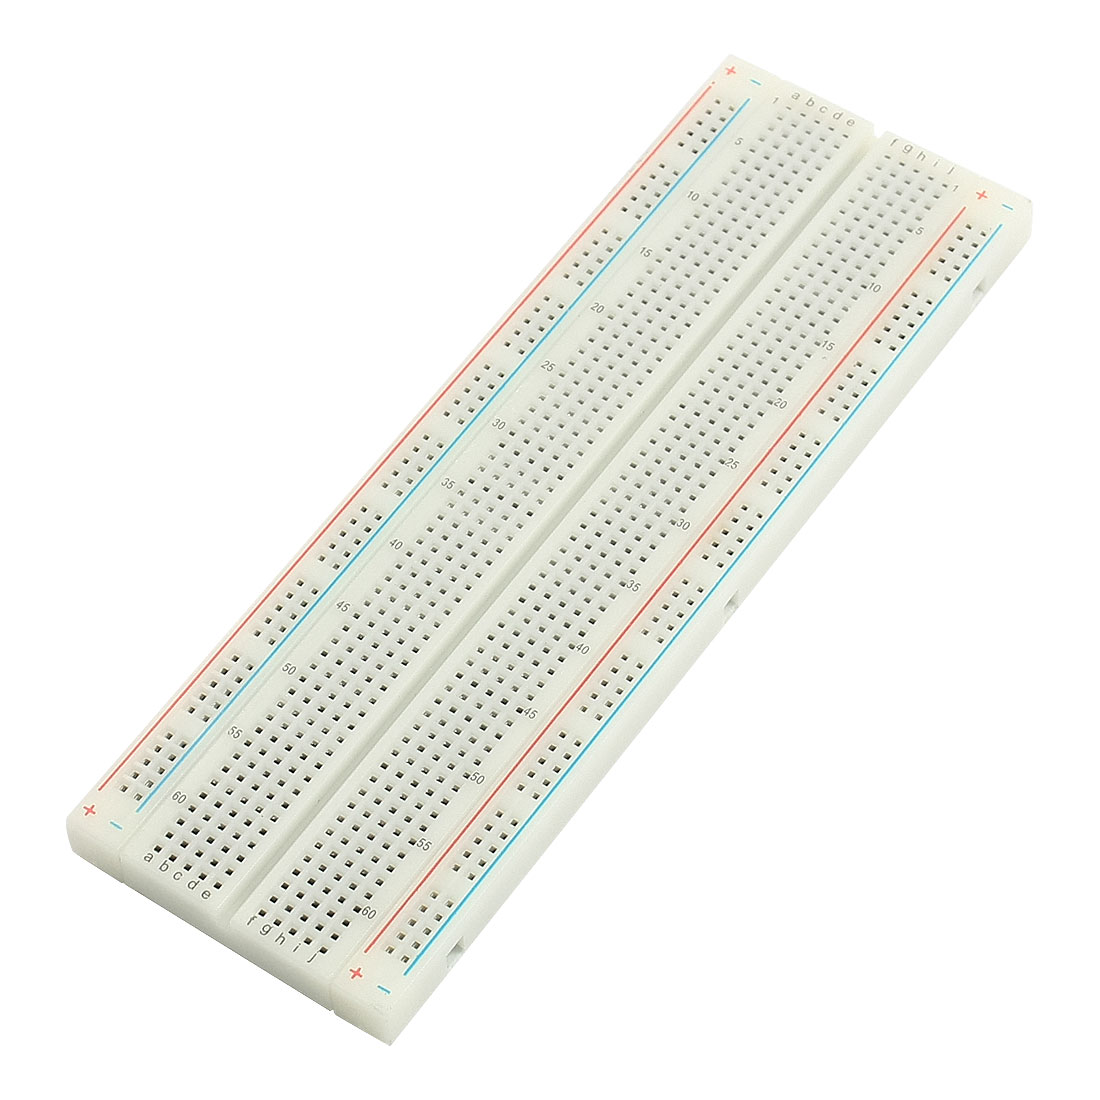 Electronic Circuit Board PCB Testing White Plastic Self-adhesive Solderless Breadboard 700 Hole 16.5cmx5.5cm